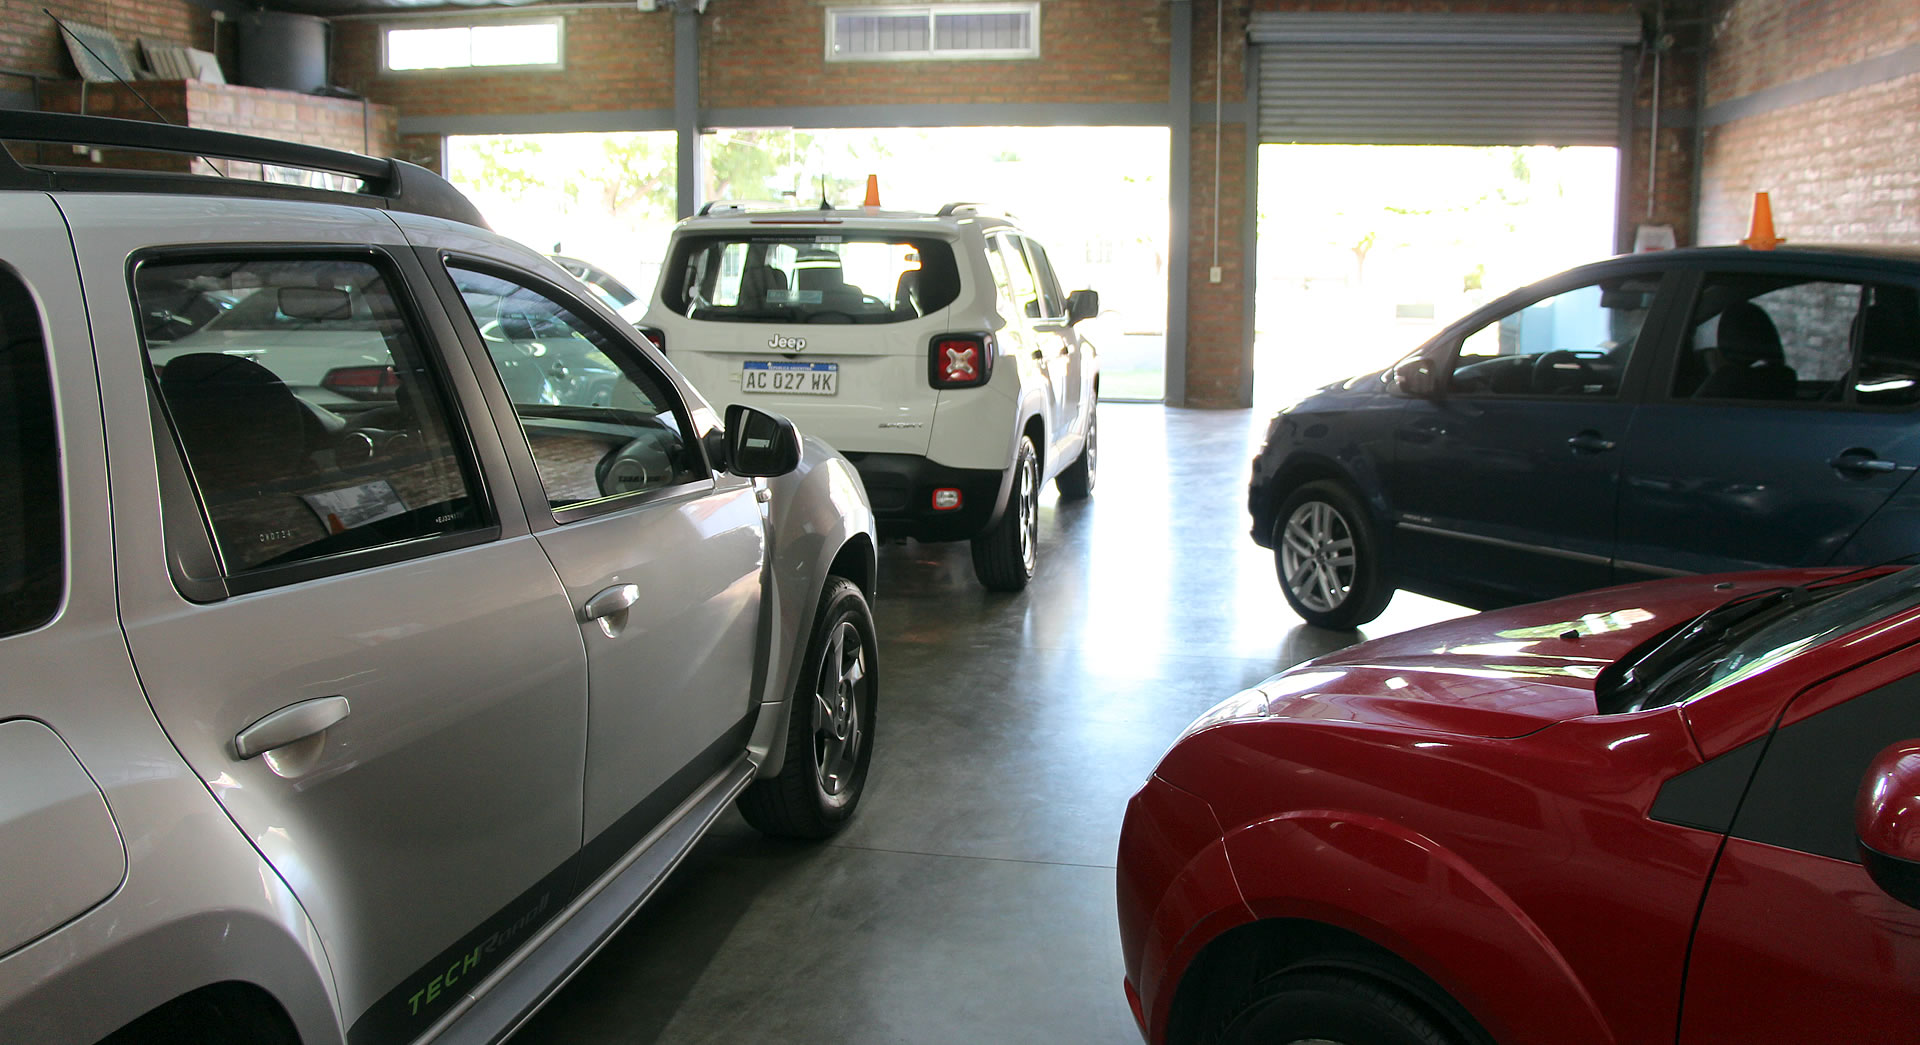 Berutto Automotores, otra foto del interior del local y autos